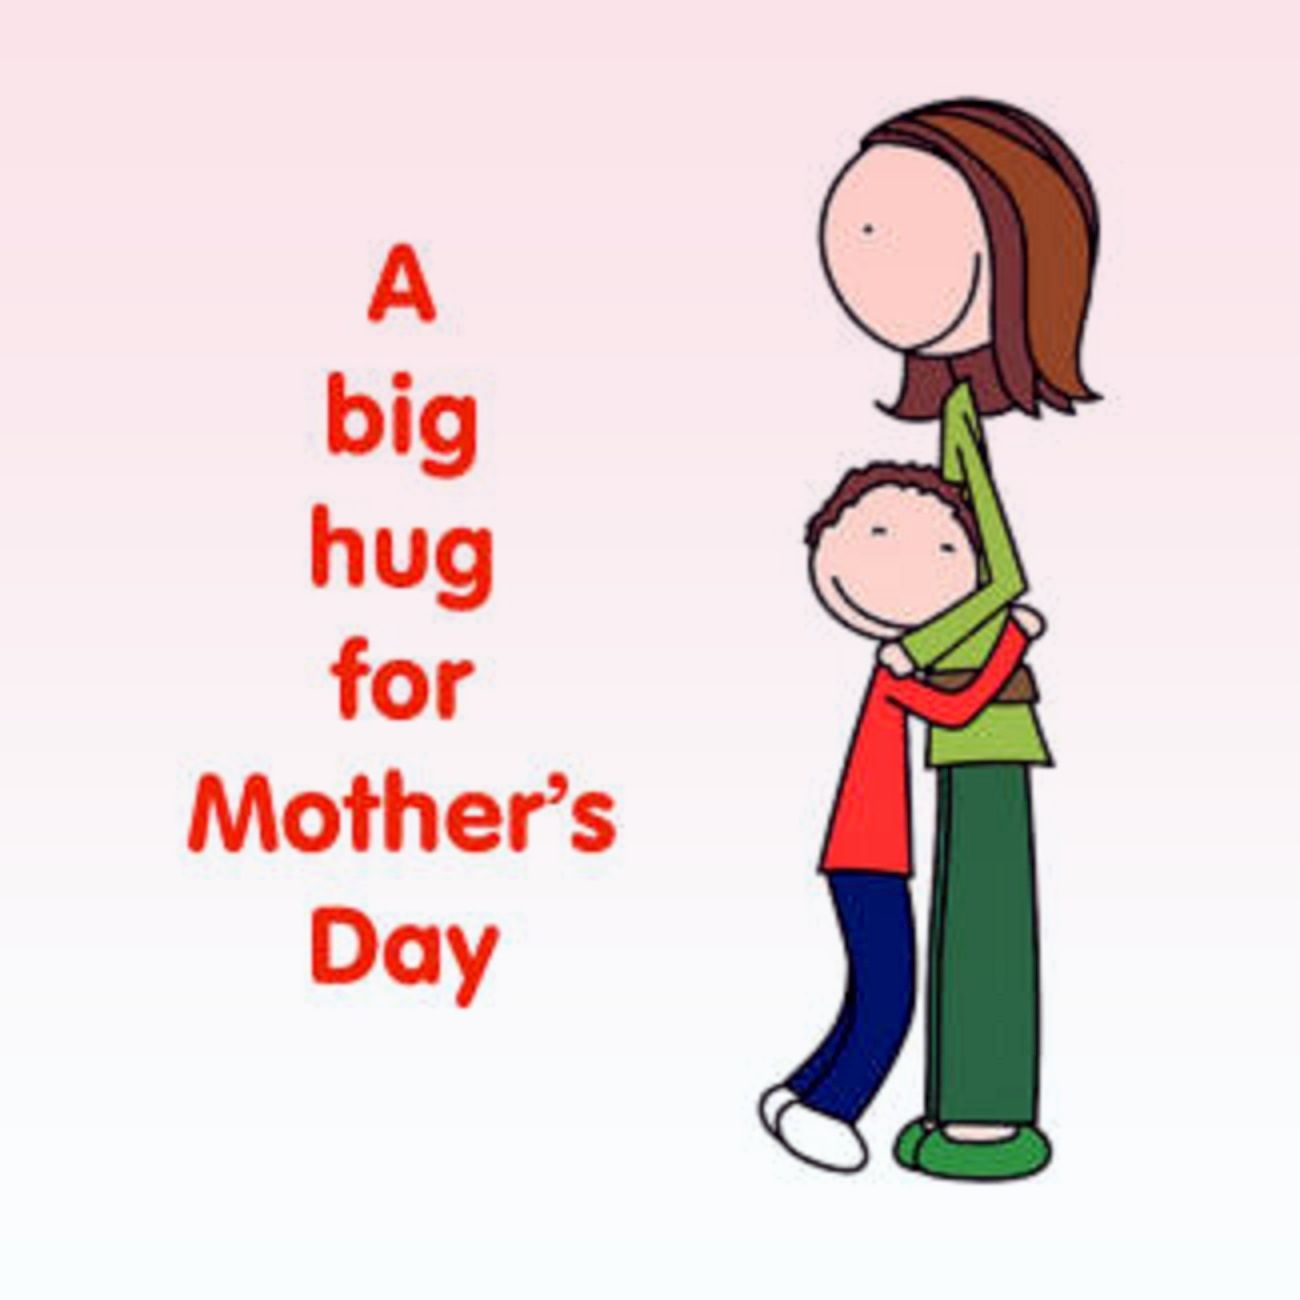 Mother's Day clipart hug Big Mother's Hug Day A